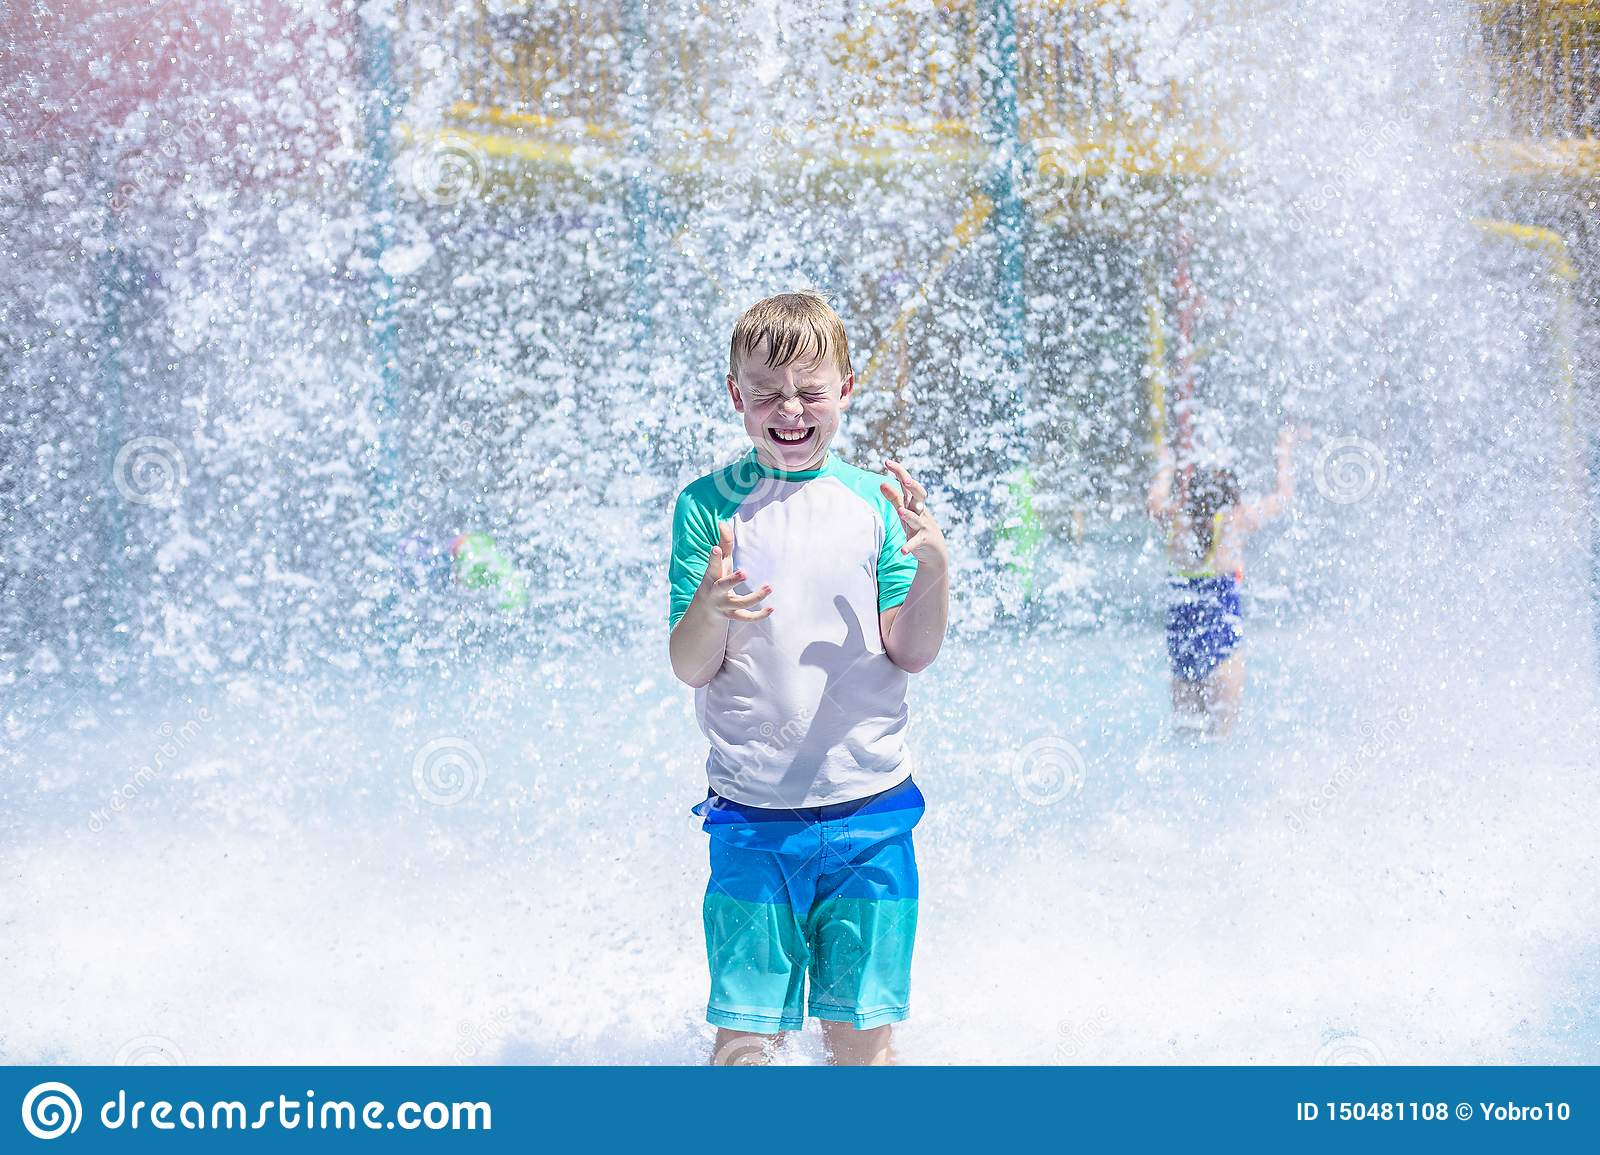 Young boy getting soaking wet while at an outdoor water park